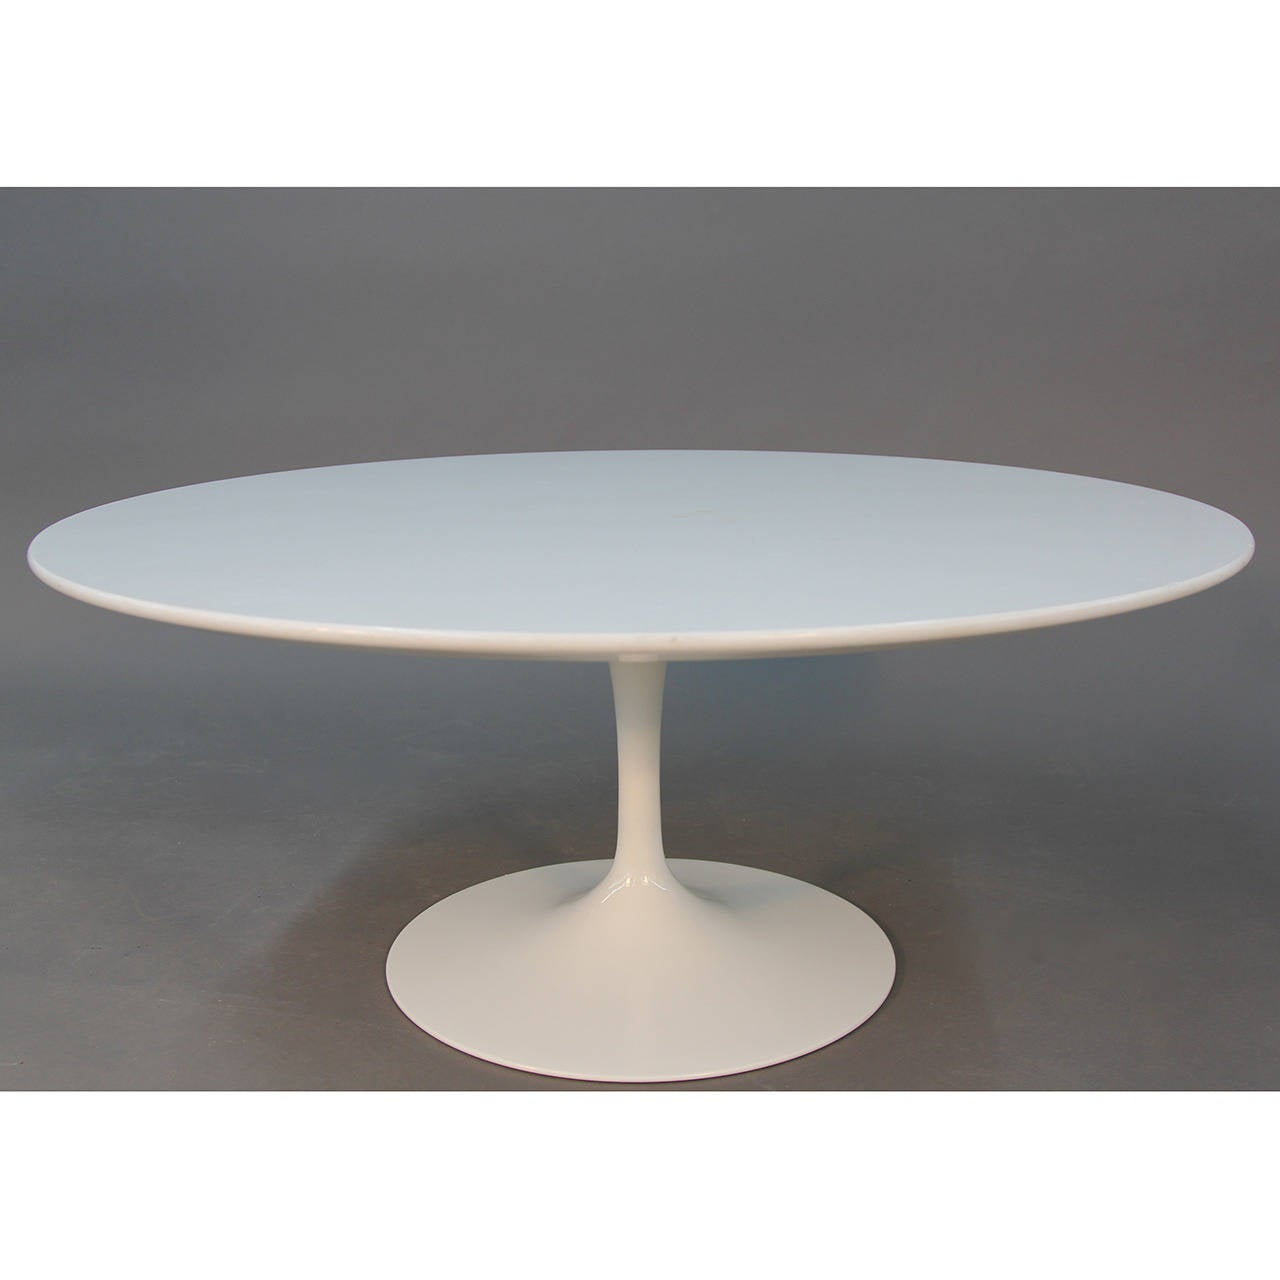 marble top knoll eero saarinen tulip coffee table at 1stdibs. Black Bedroom Furniture Sets. Home Design Ideas